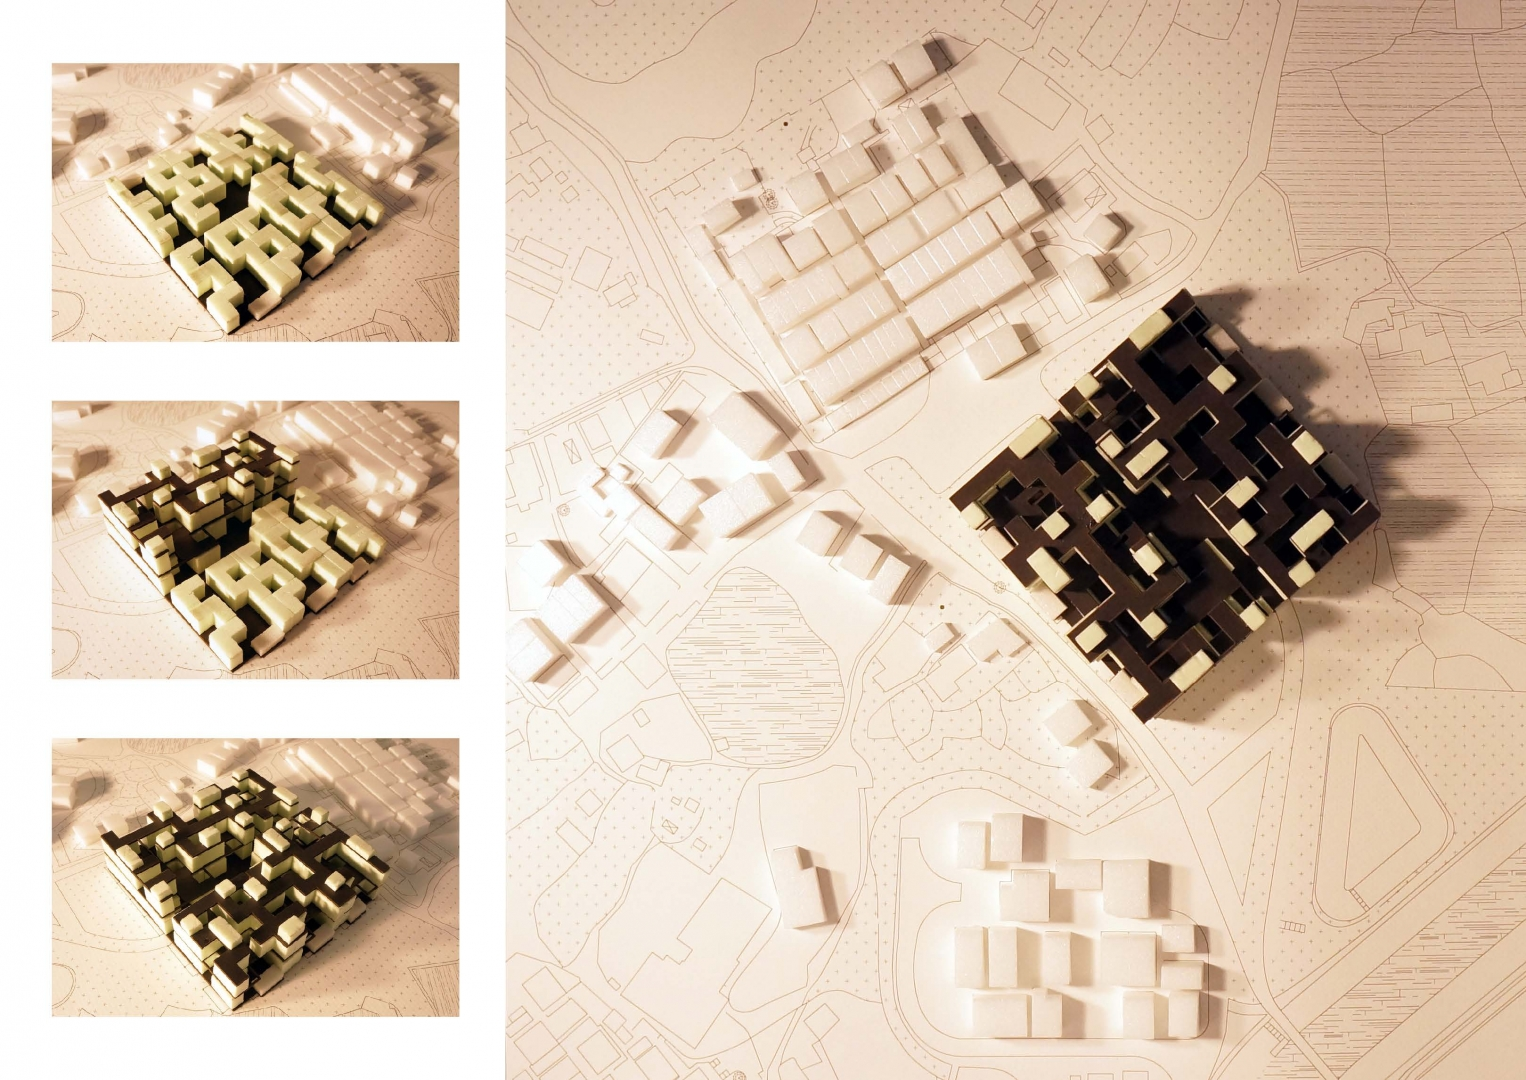 Enlarge Photo: Meta Design: Collective Self-construction for the People 5